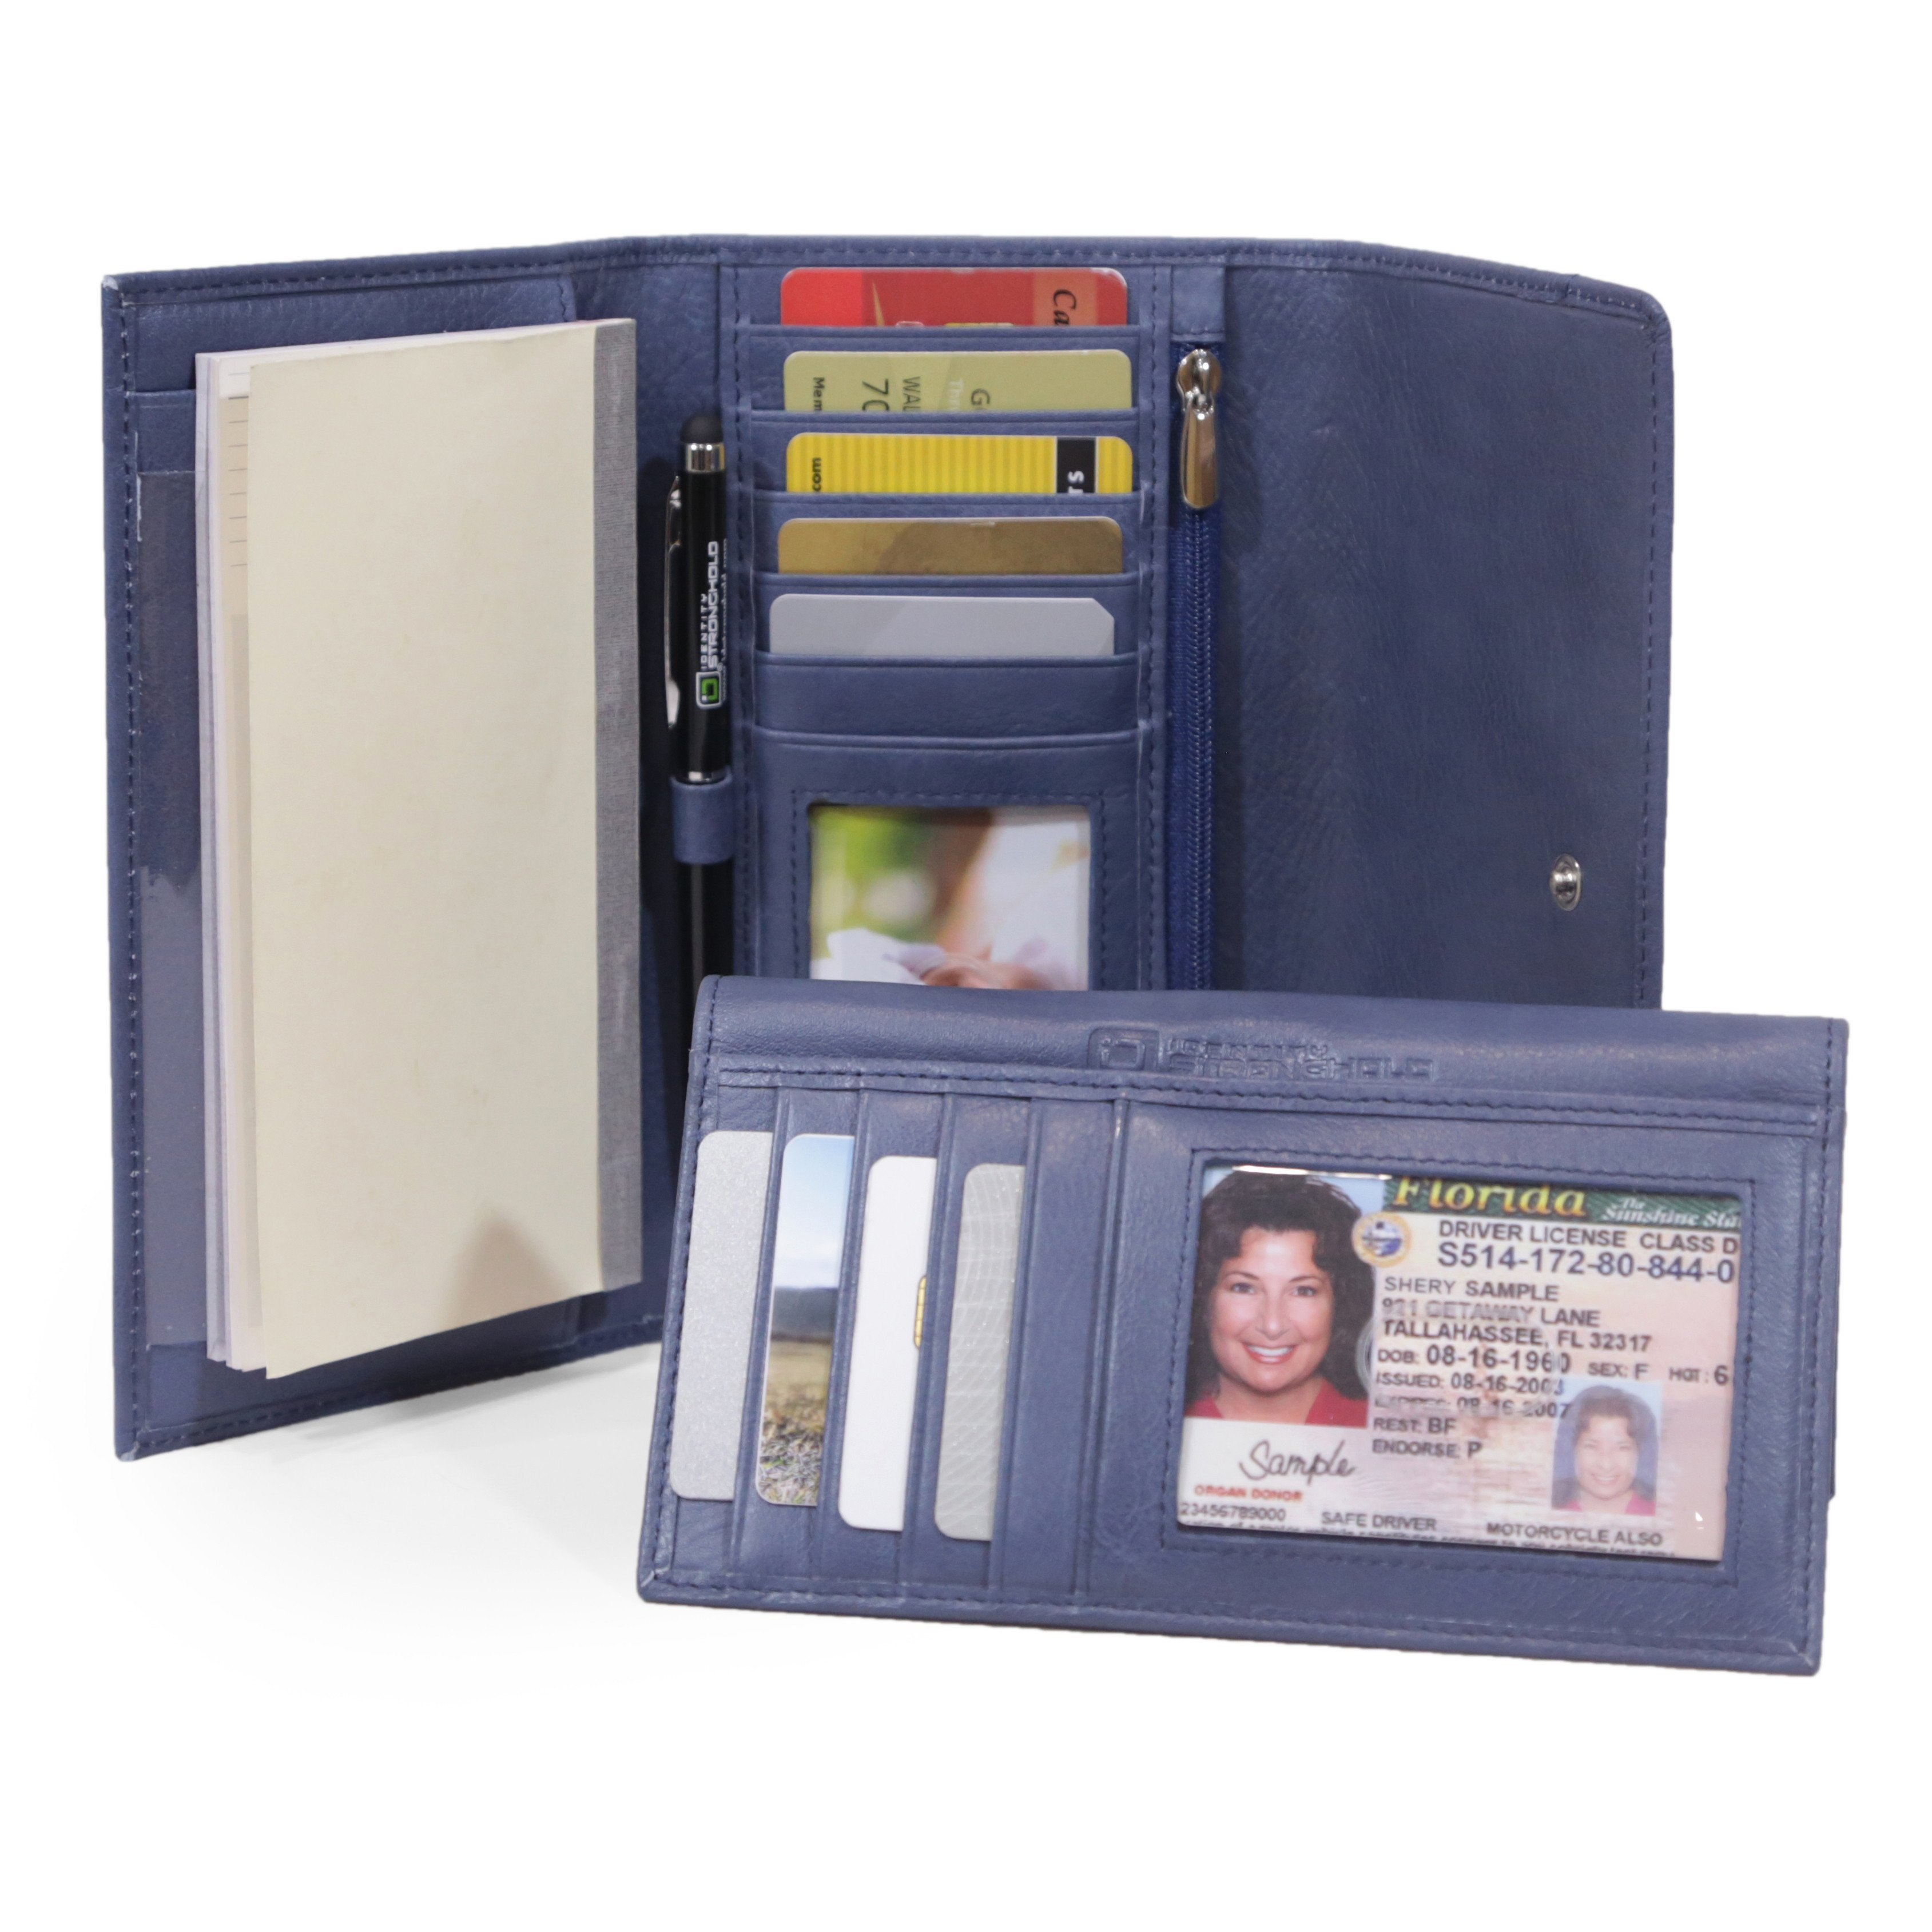 ID Stronghold Deluxe Checkbook Wallet - RFID Blocking Ladies Wallet - RFID Wallet for Women - Blue